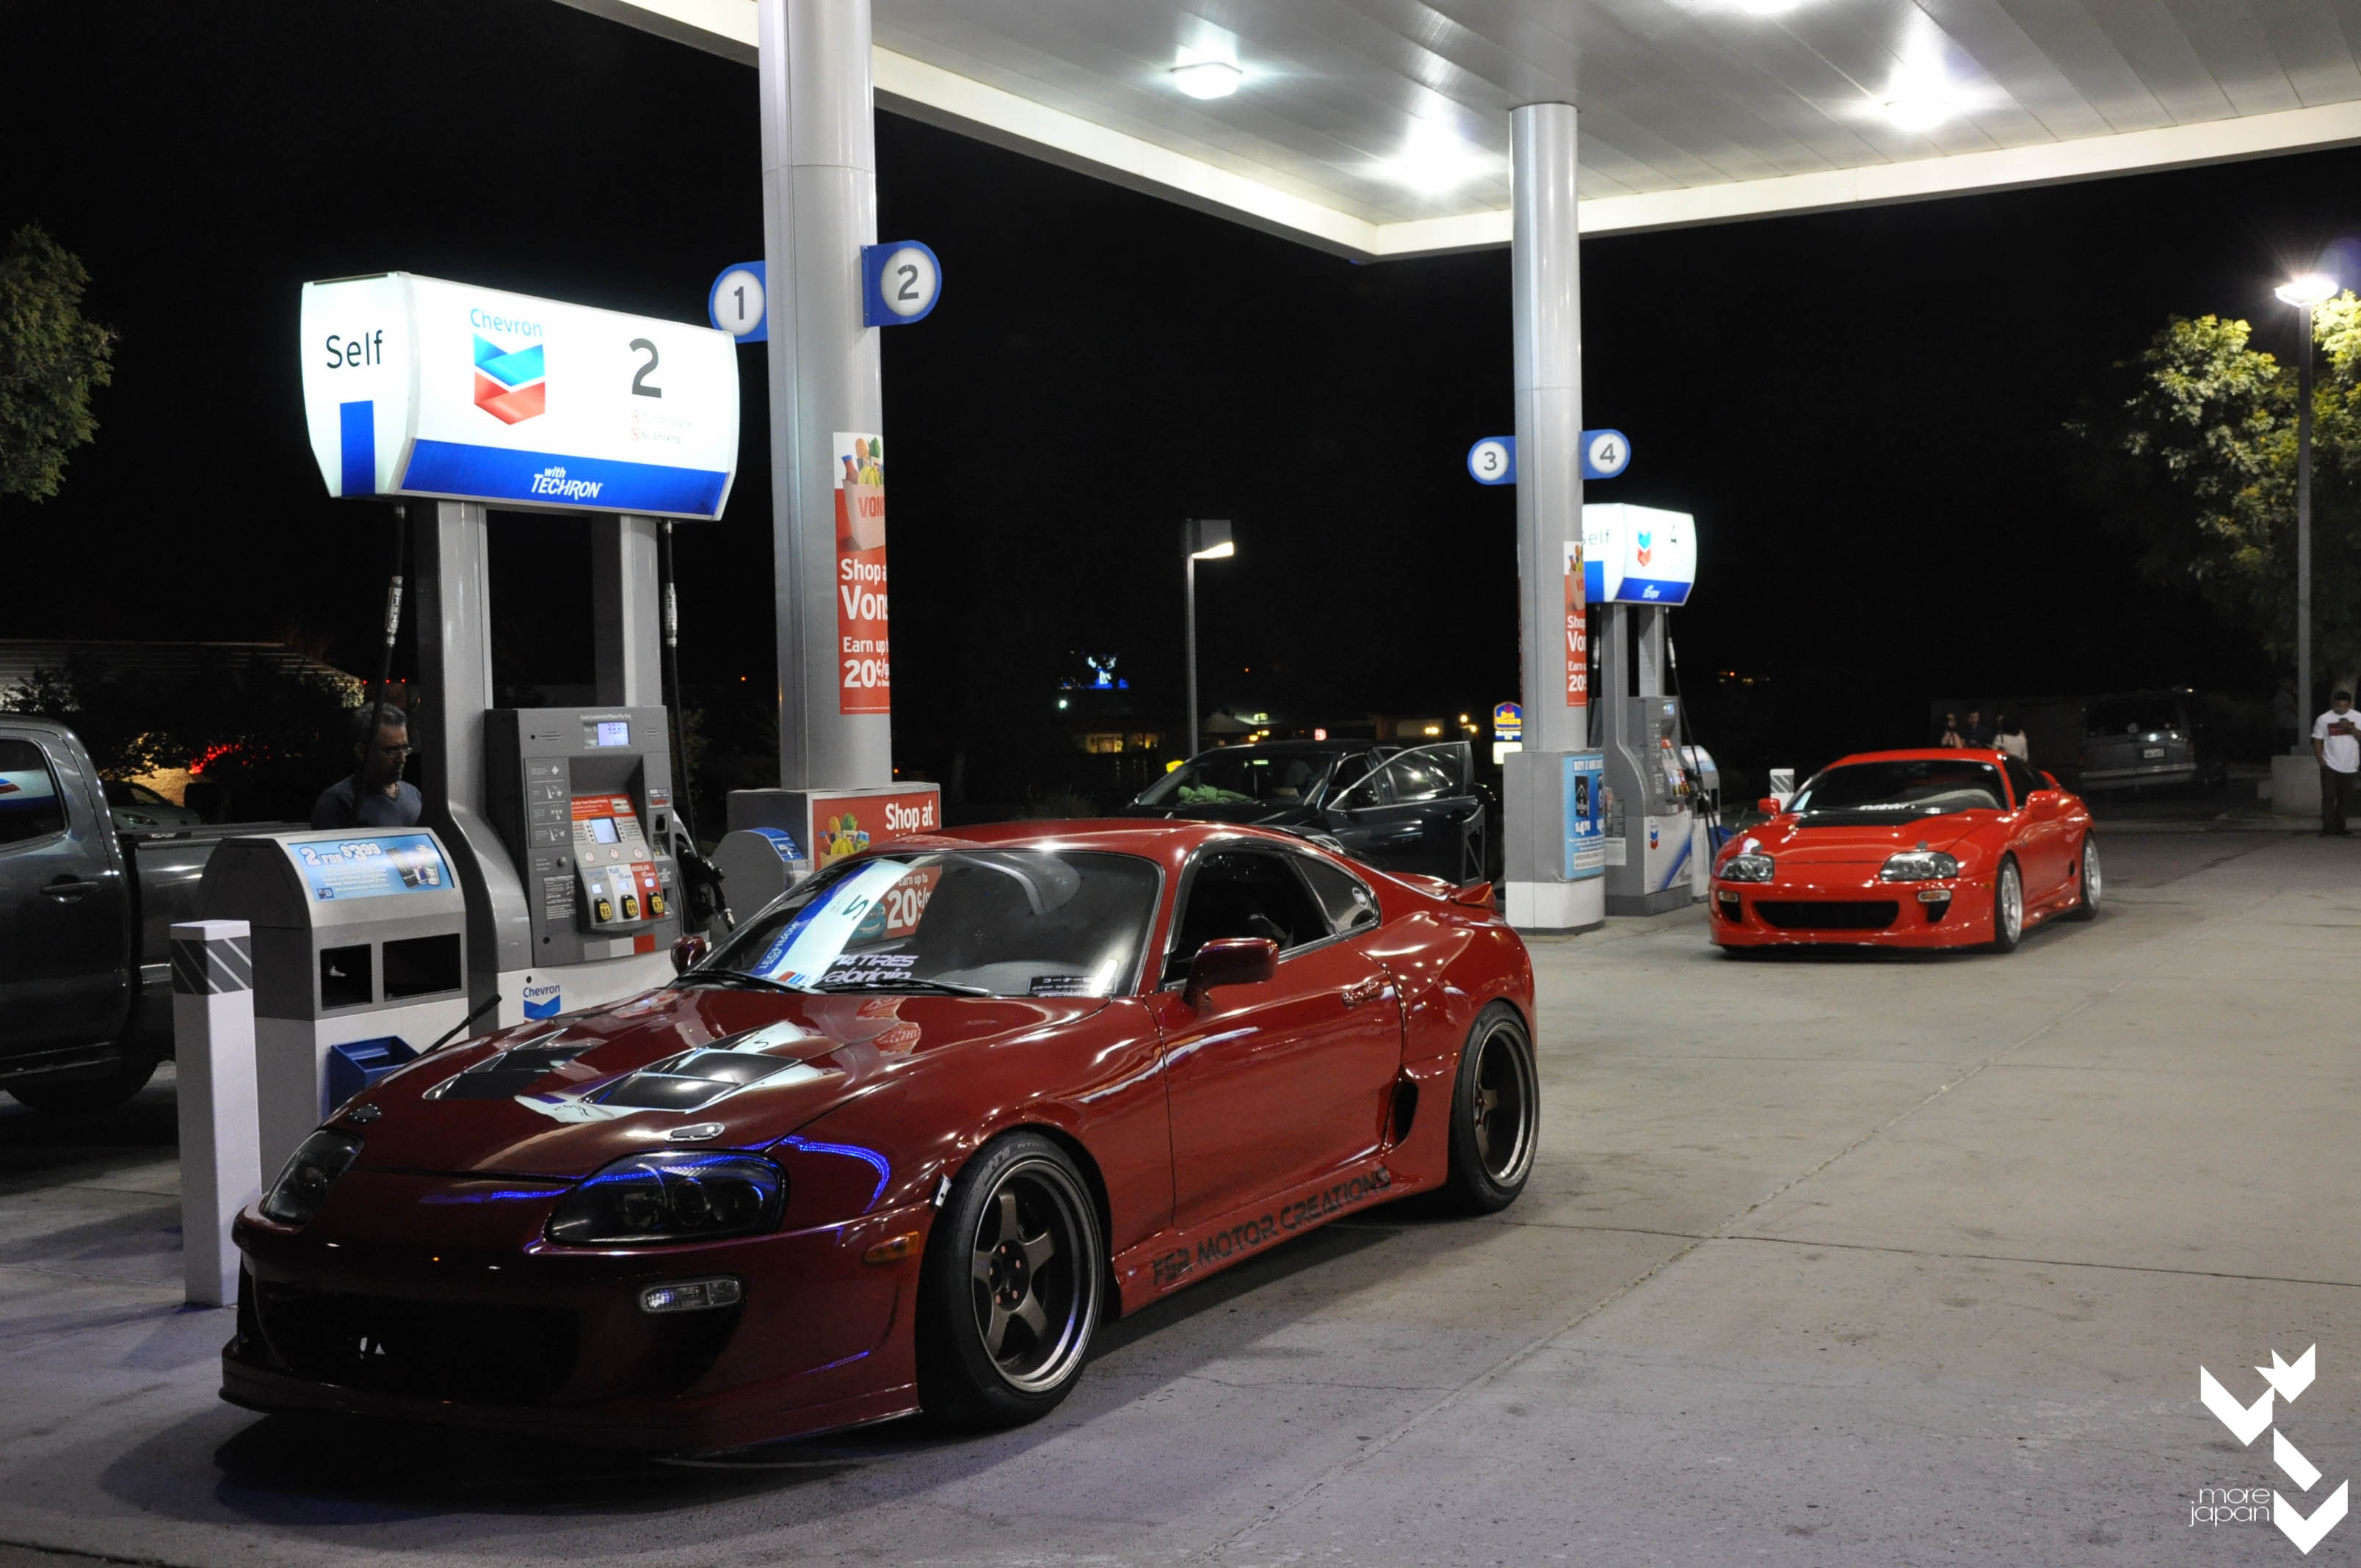 Second stop for gas. Gotta take gas station pics.